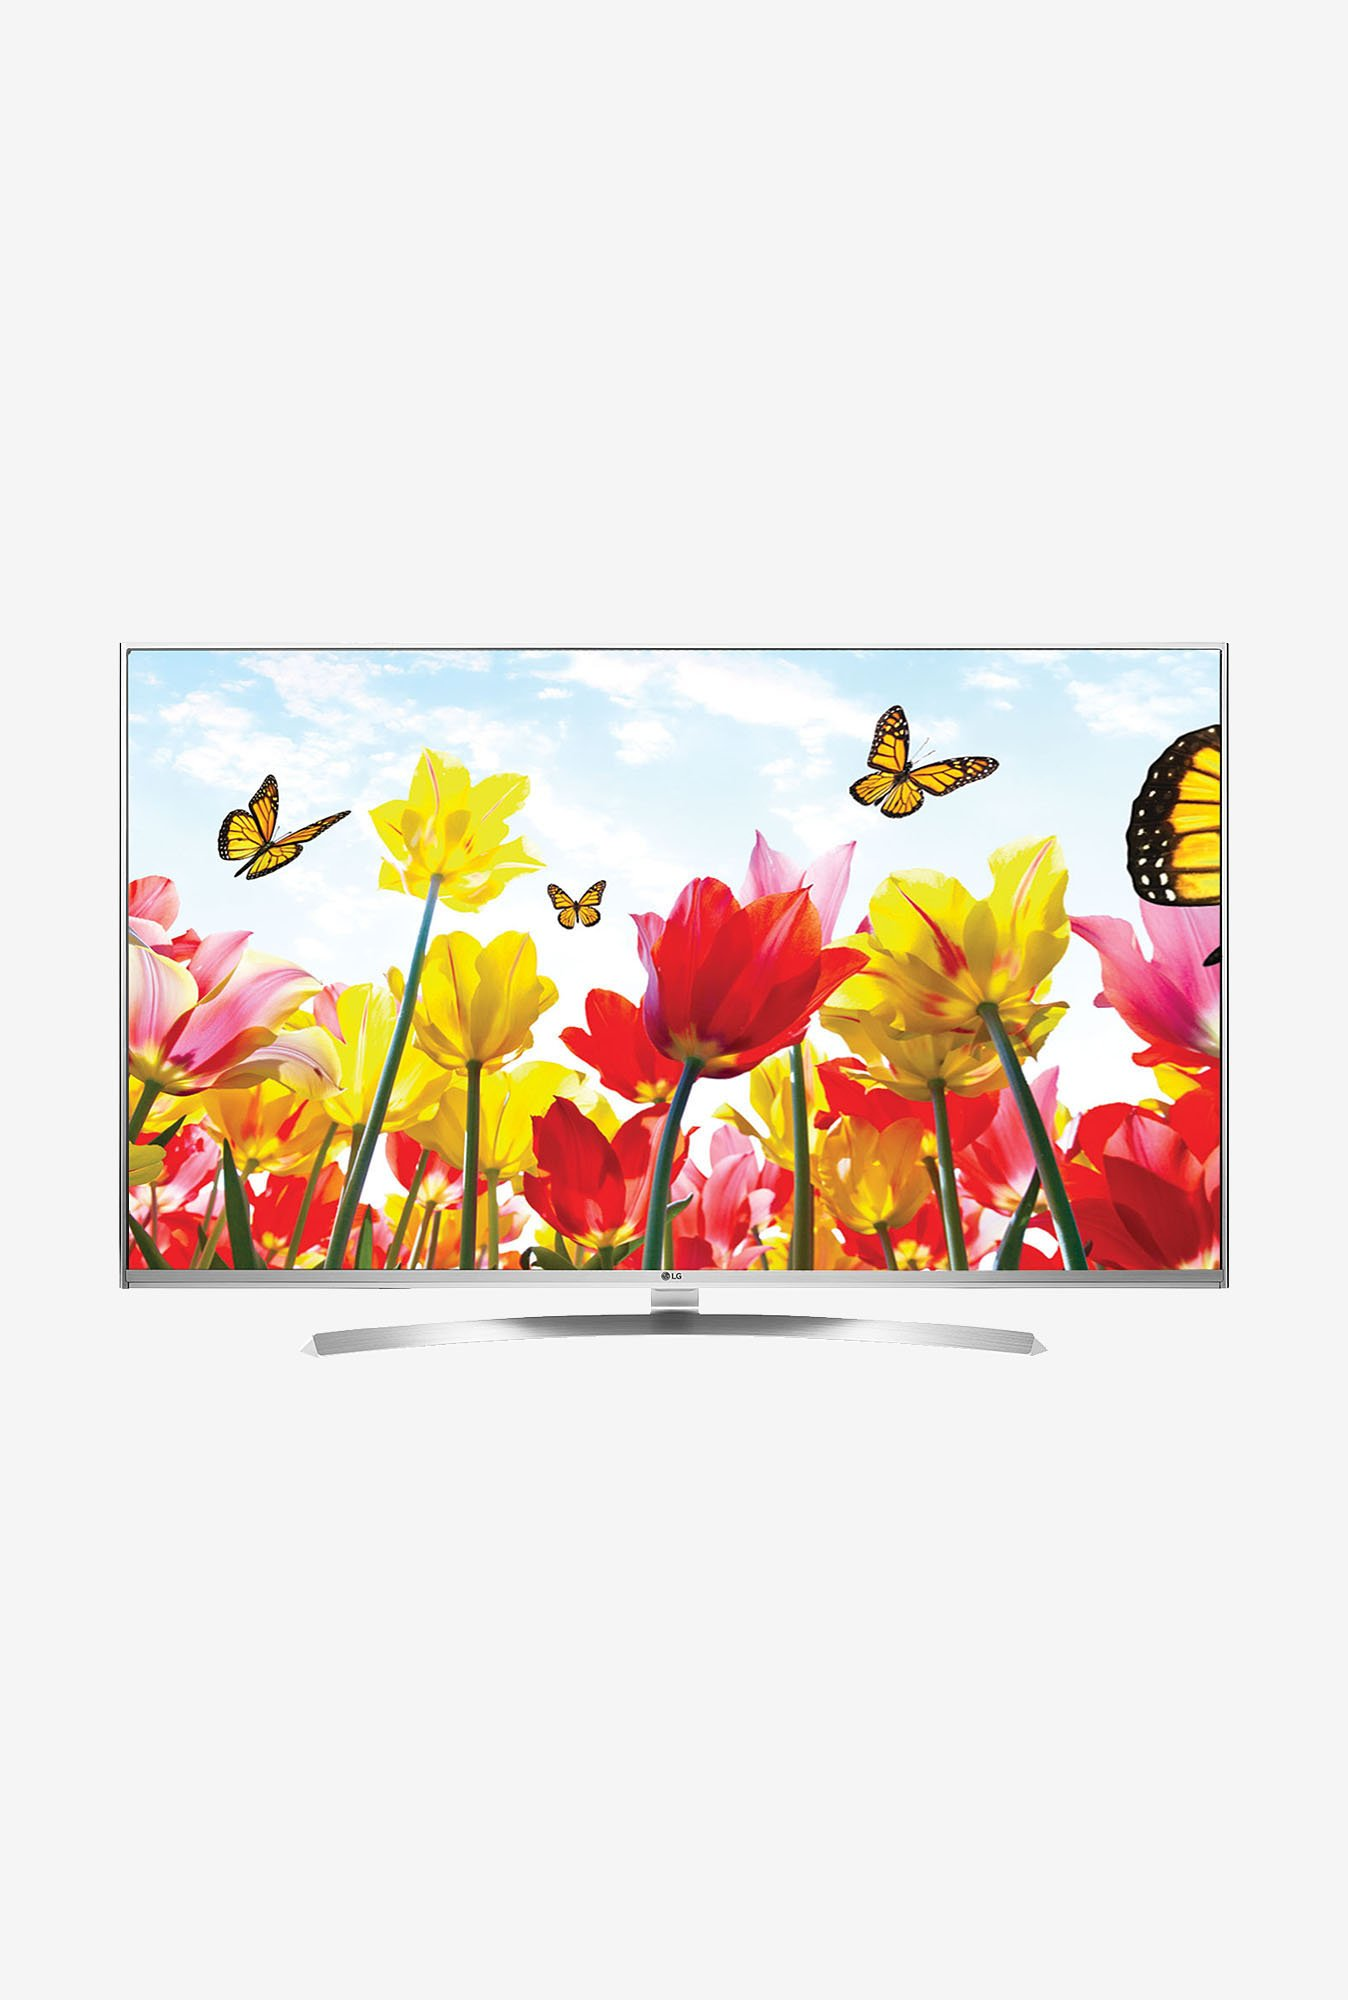 LG 65UH850T 164cm (65inches ) UHD 4K Led TV (Silver)